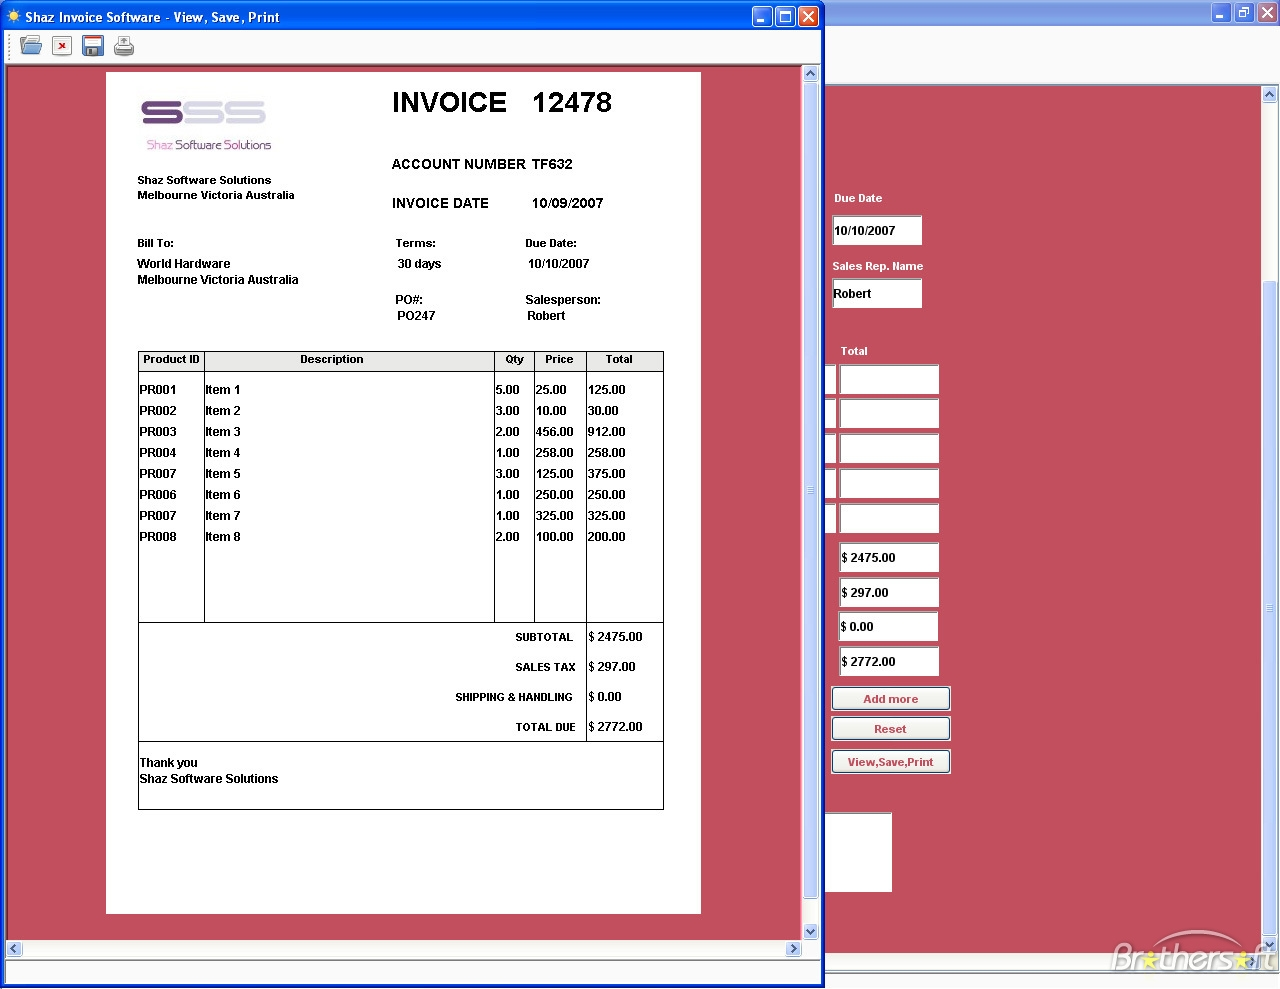 create invoice software download free shaz invoice software shaz invoice software 100 1280 X 989